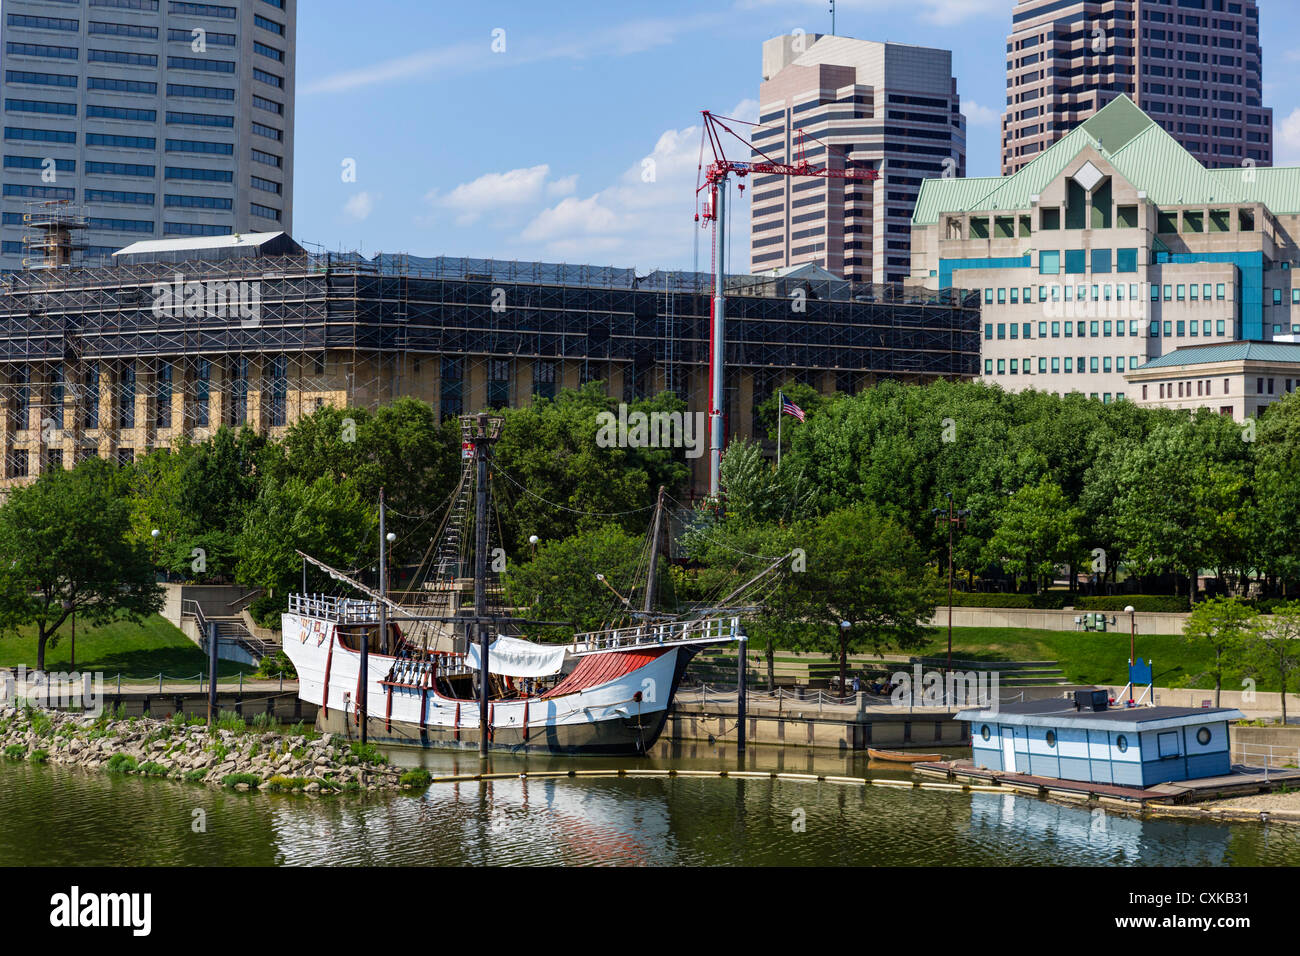 Nachbildung des Christopher Columbus Schiff 'Santa Maria' am Scioto River, Columbus, Ohio, USA Stockfoto